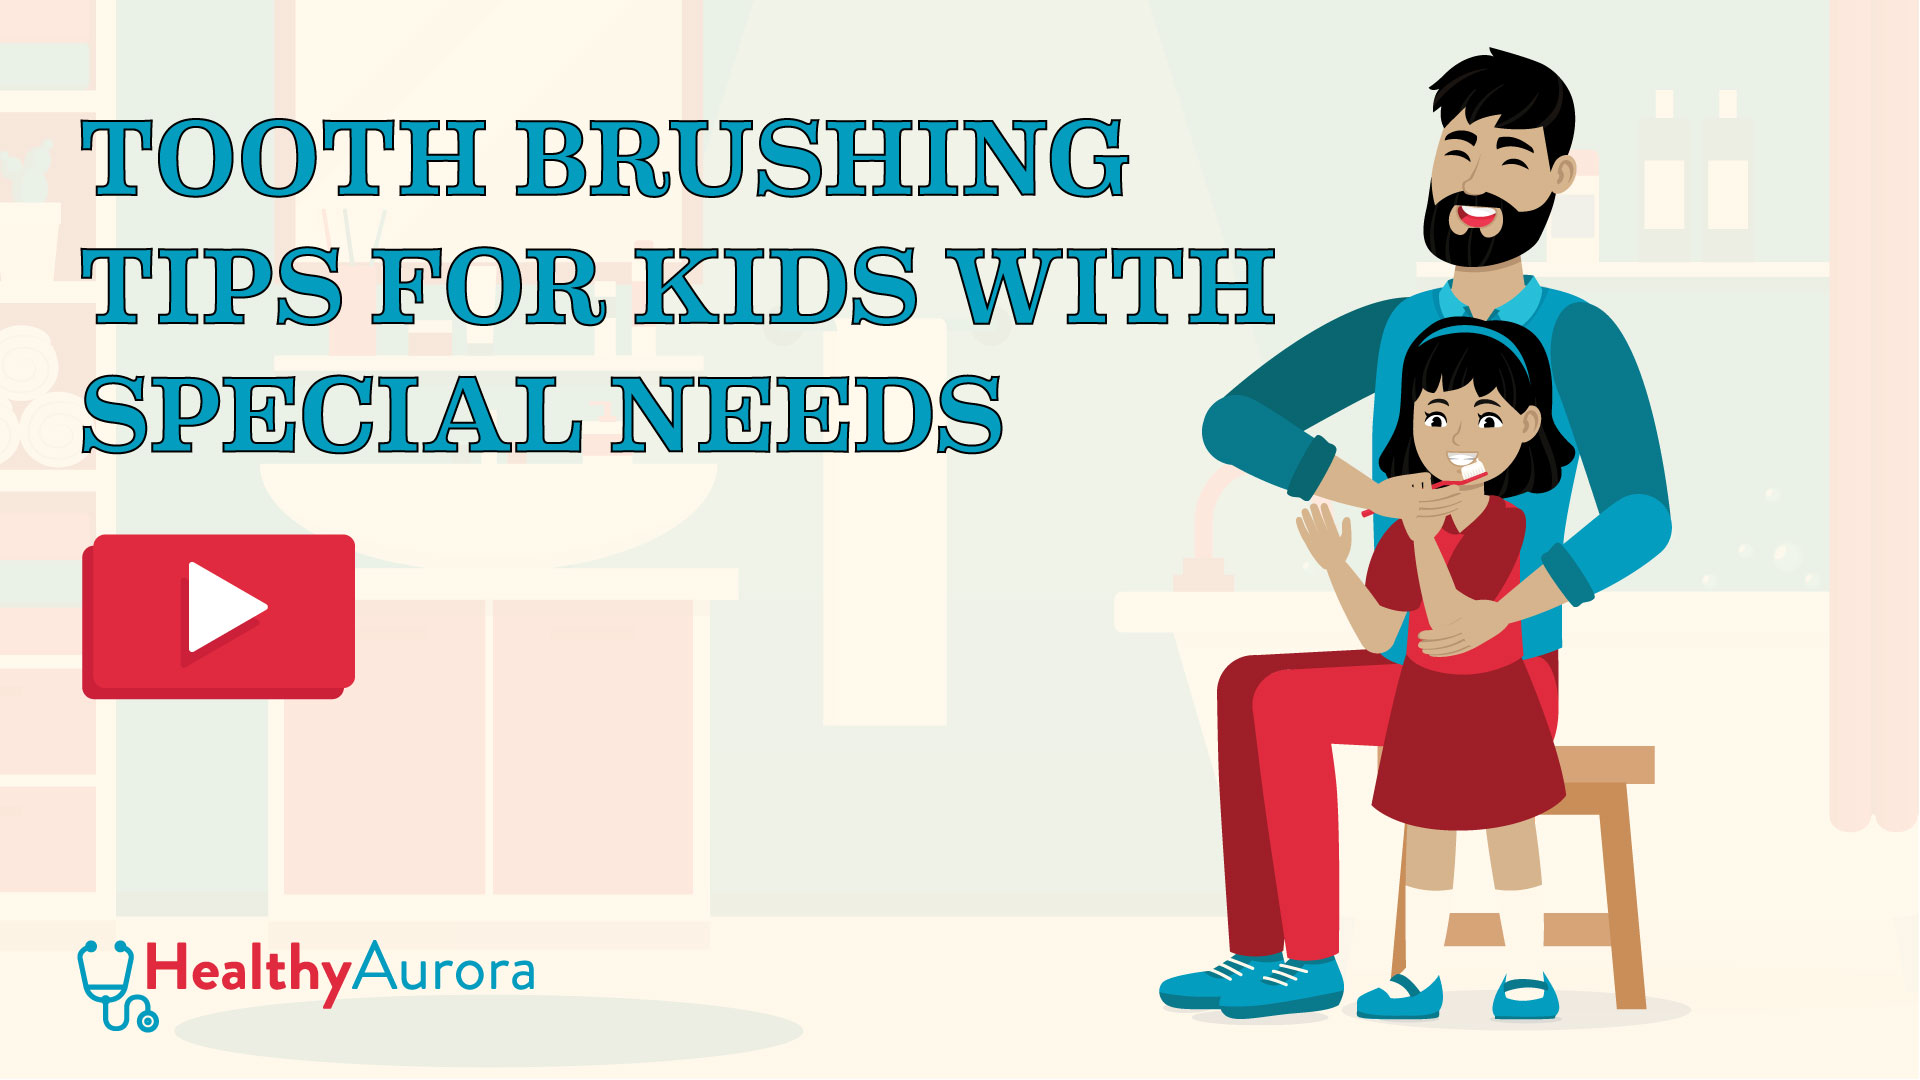 Tooth Brushing Tips for Kids with Special Needs